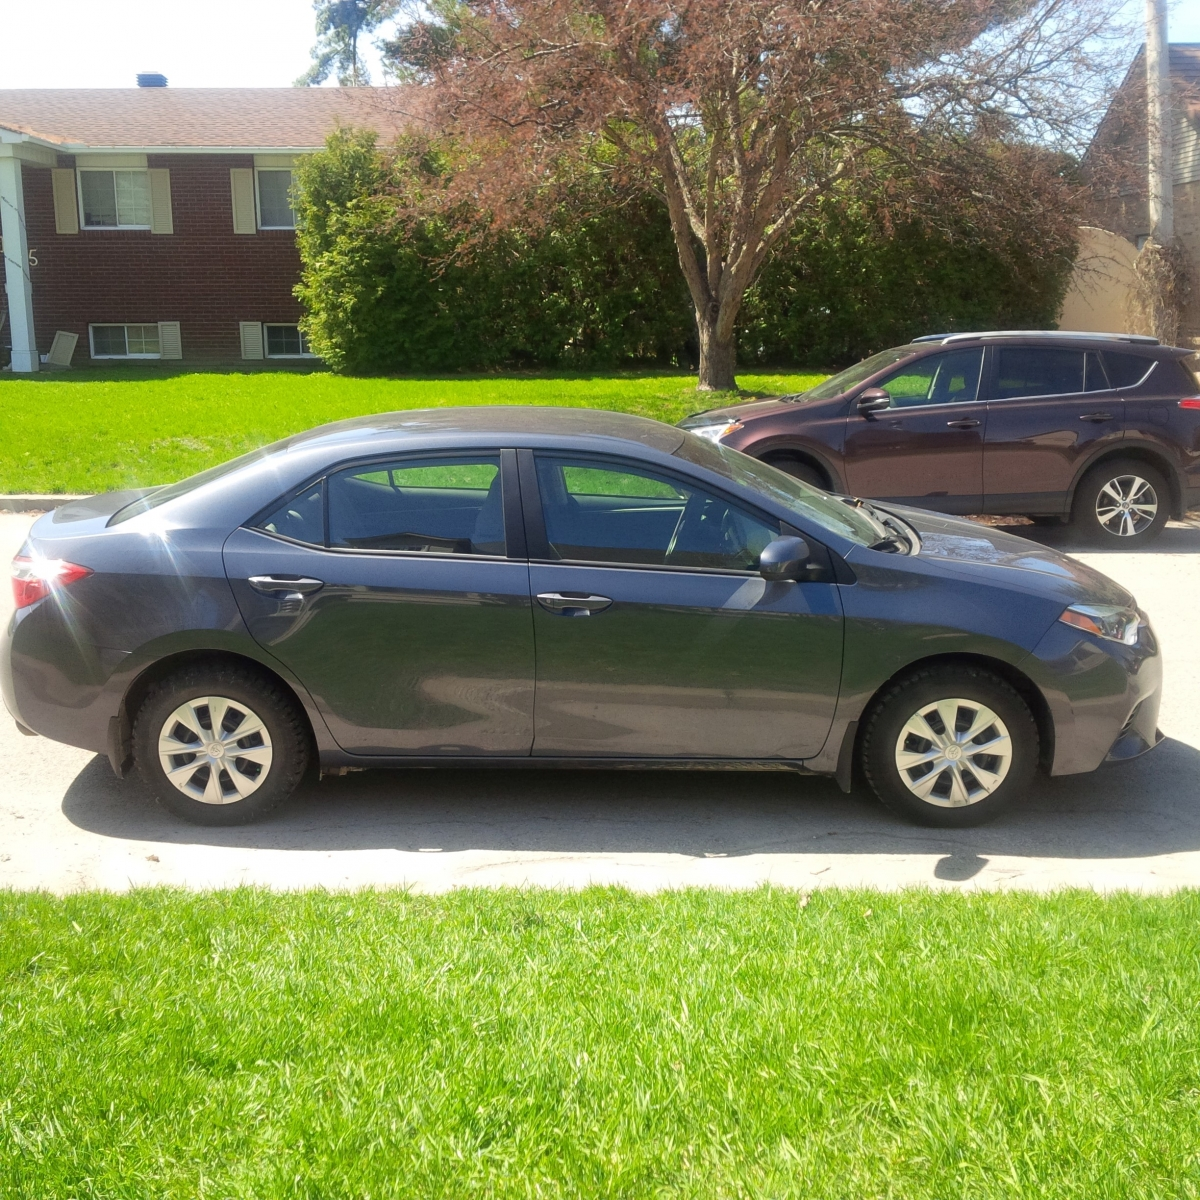 Lease A Toyota Corolla: Toyota Corolla 2015 CE, 8105 Km, Lease Transfer 295$/month